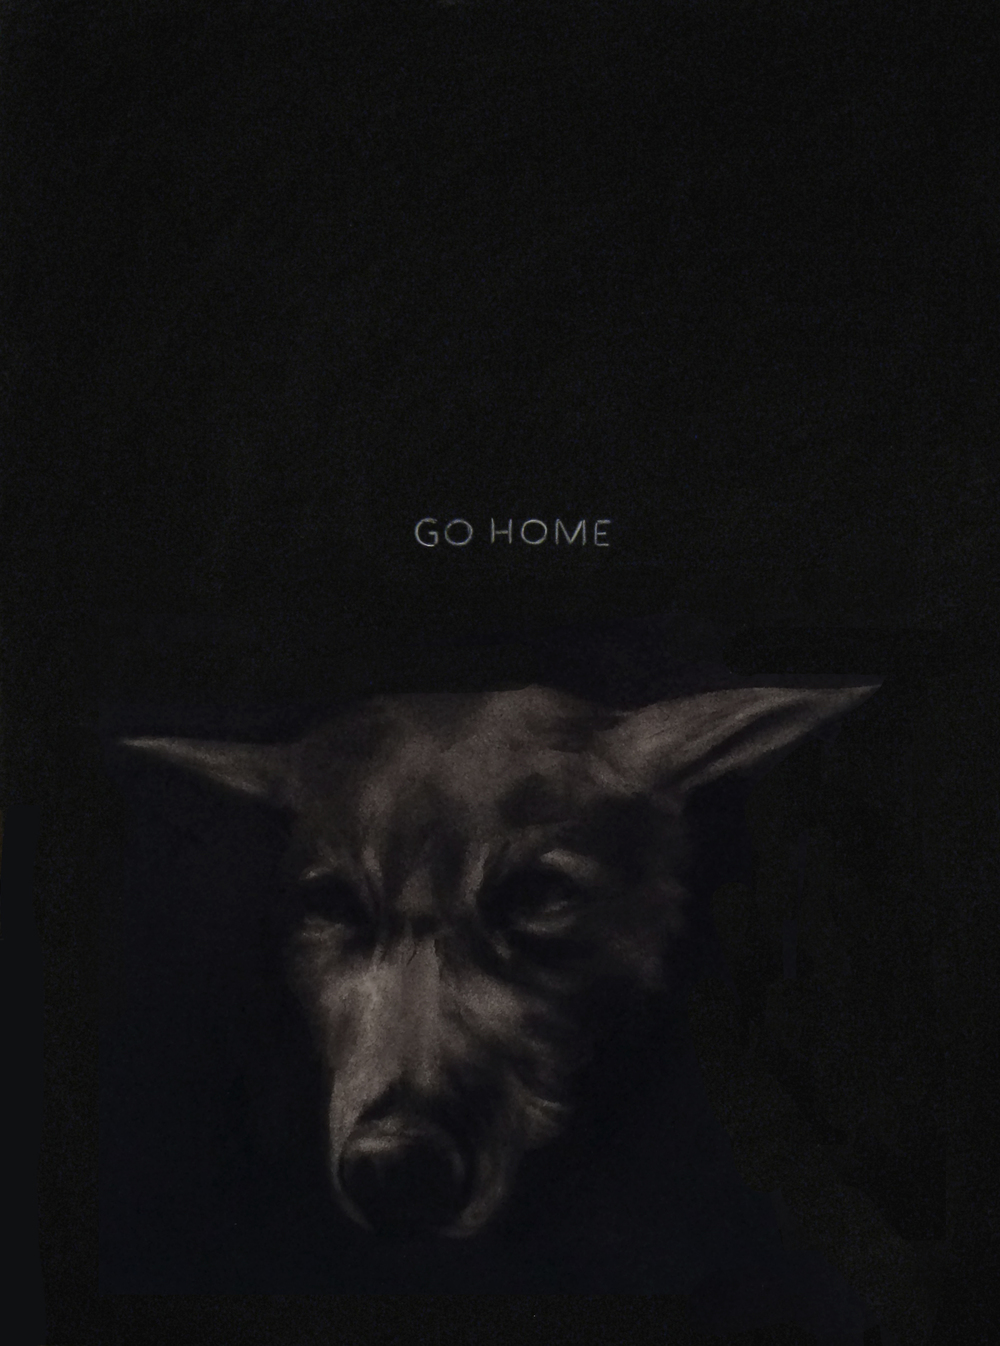 GO HOME,  2014  Charcoal on stretched paper  18x24""